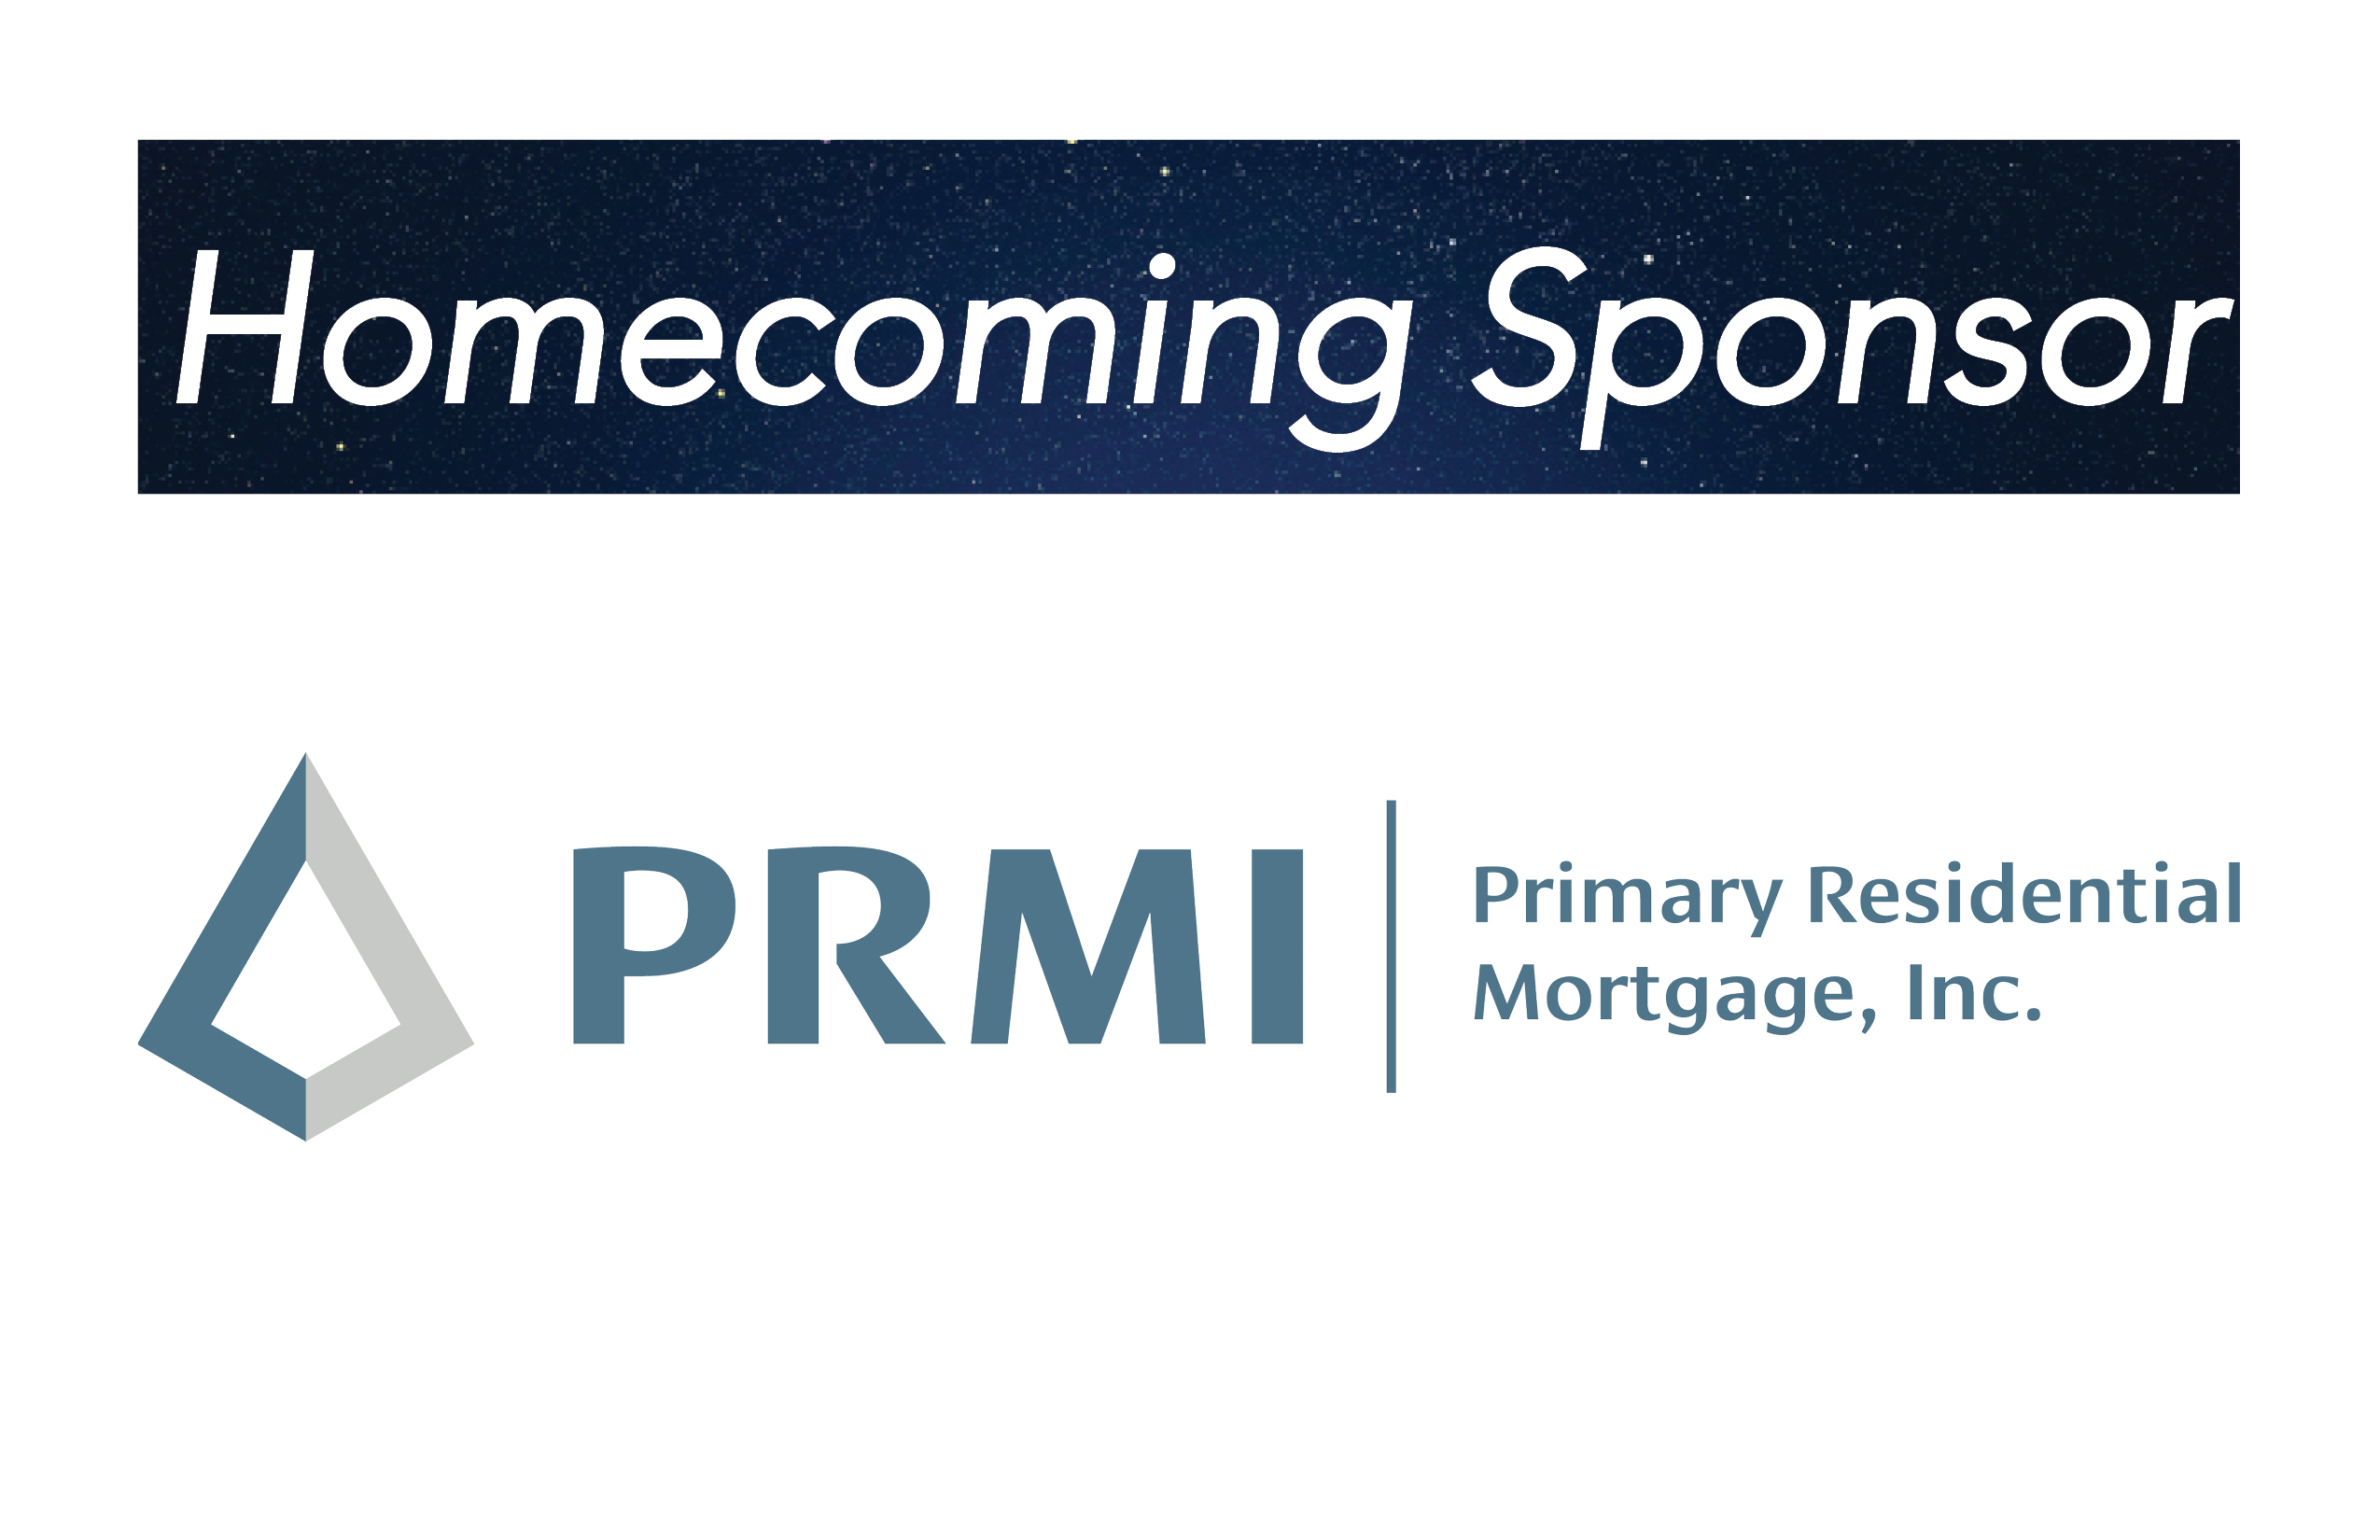 PRMI Homecoming Sponsor